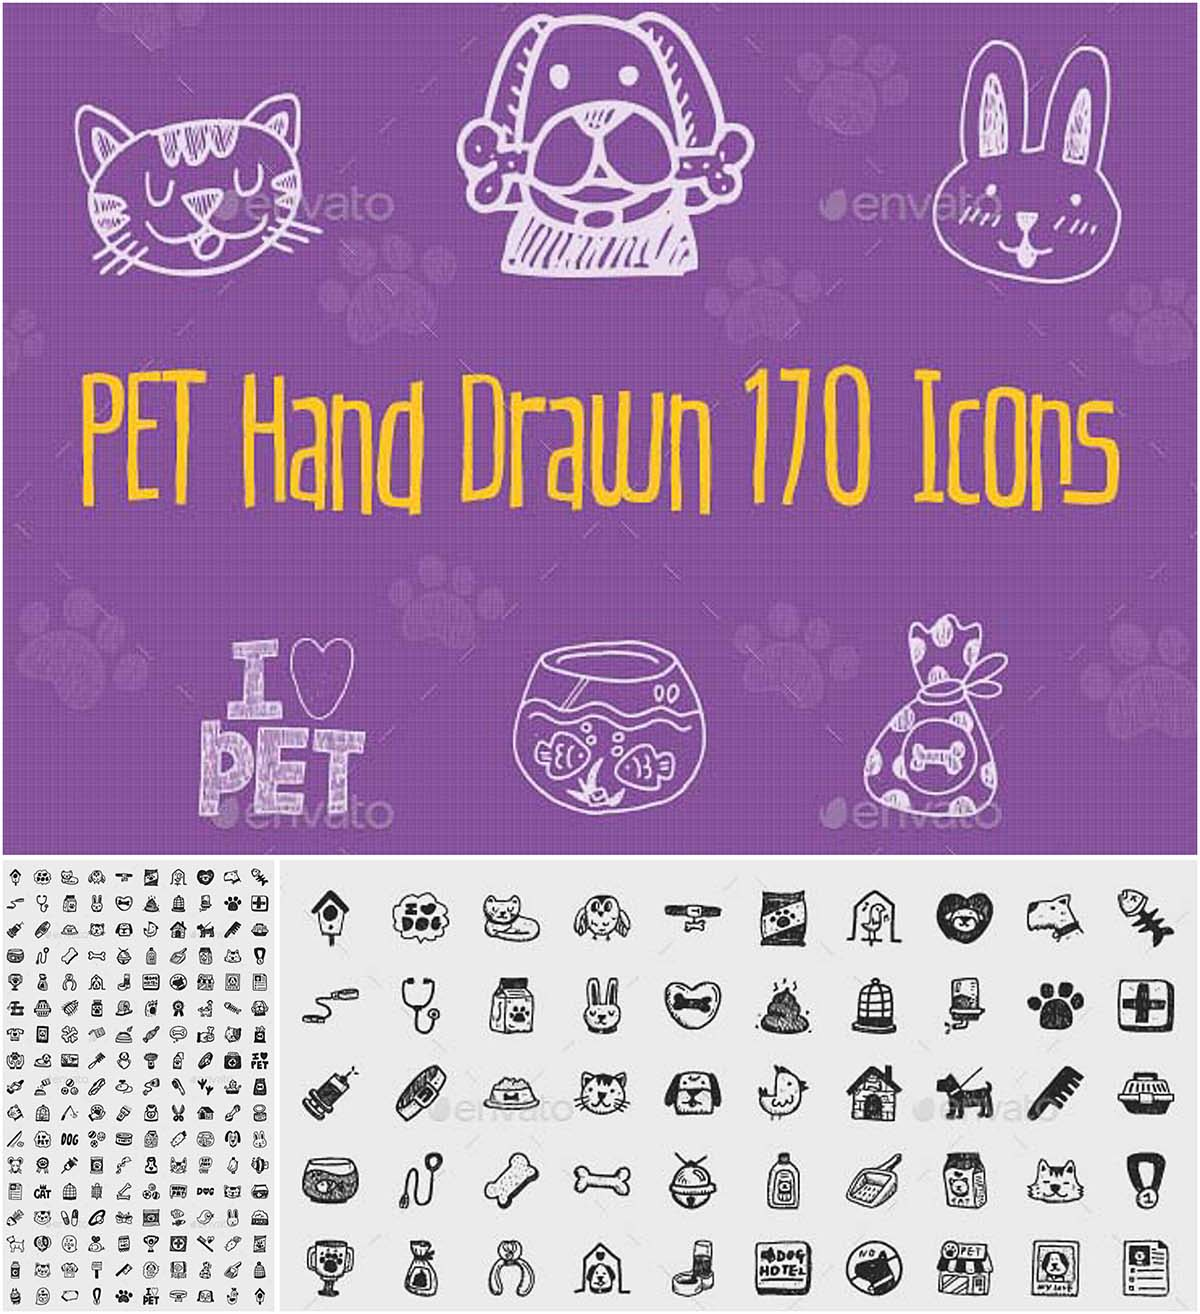 Pet hand drawn 170 icons